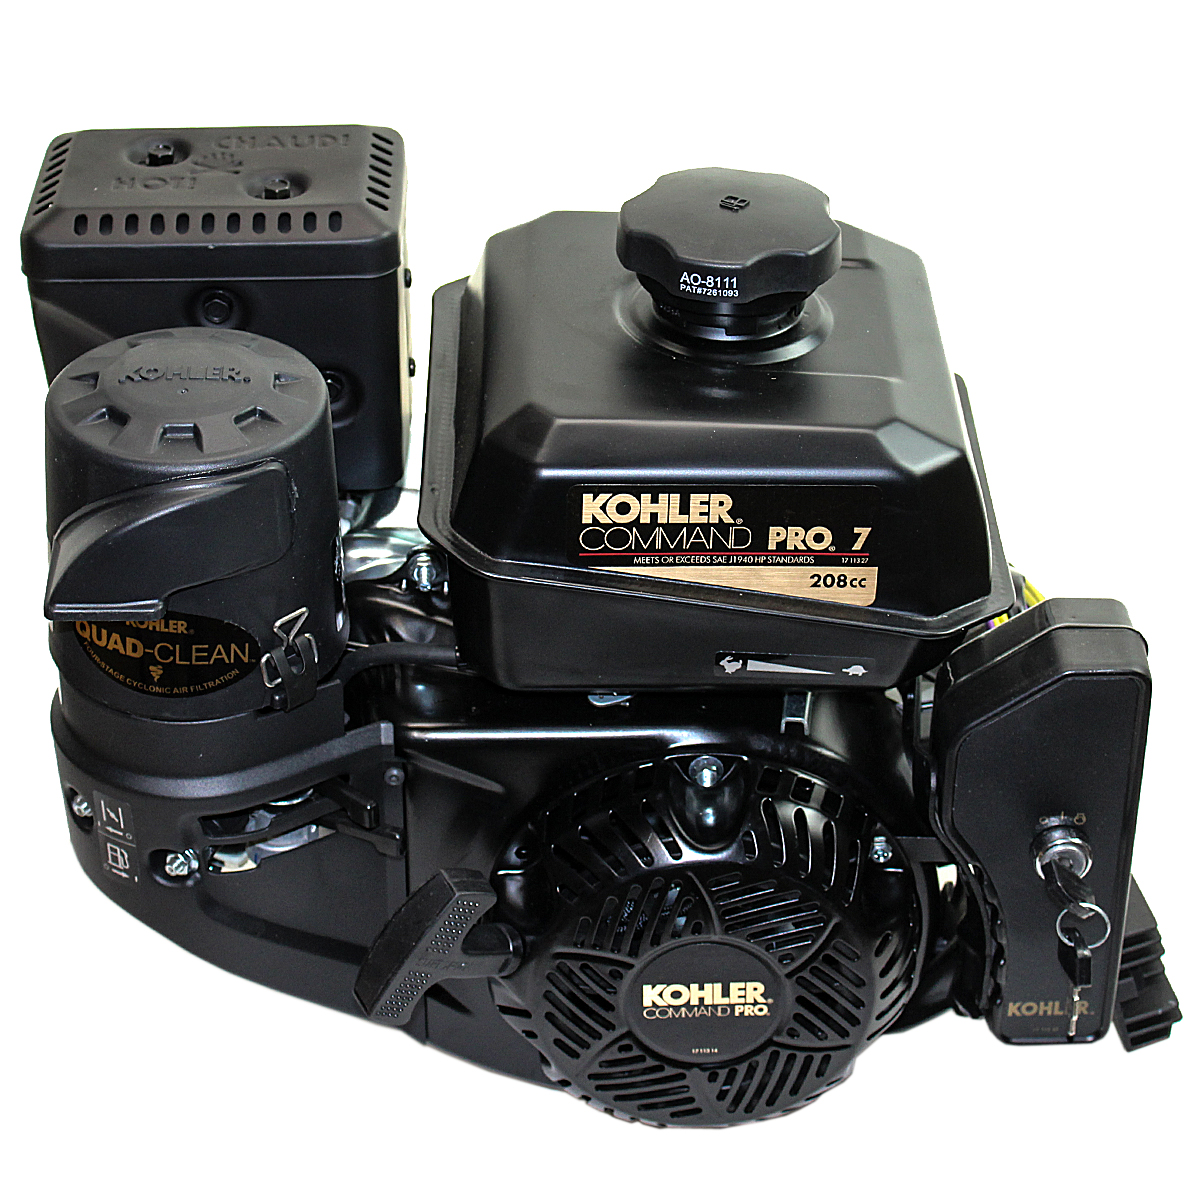 7HP Kohler Command Pro, 6:1 Gear Reduction 3/4